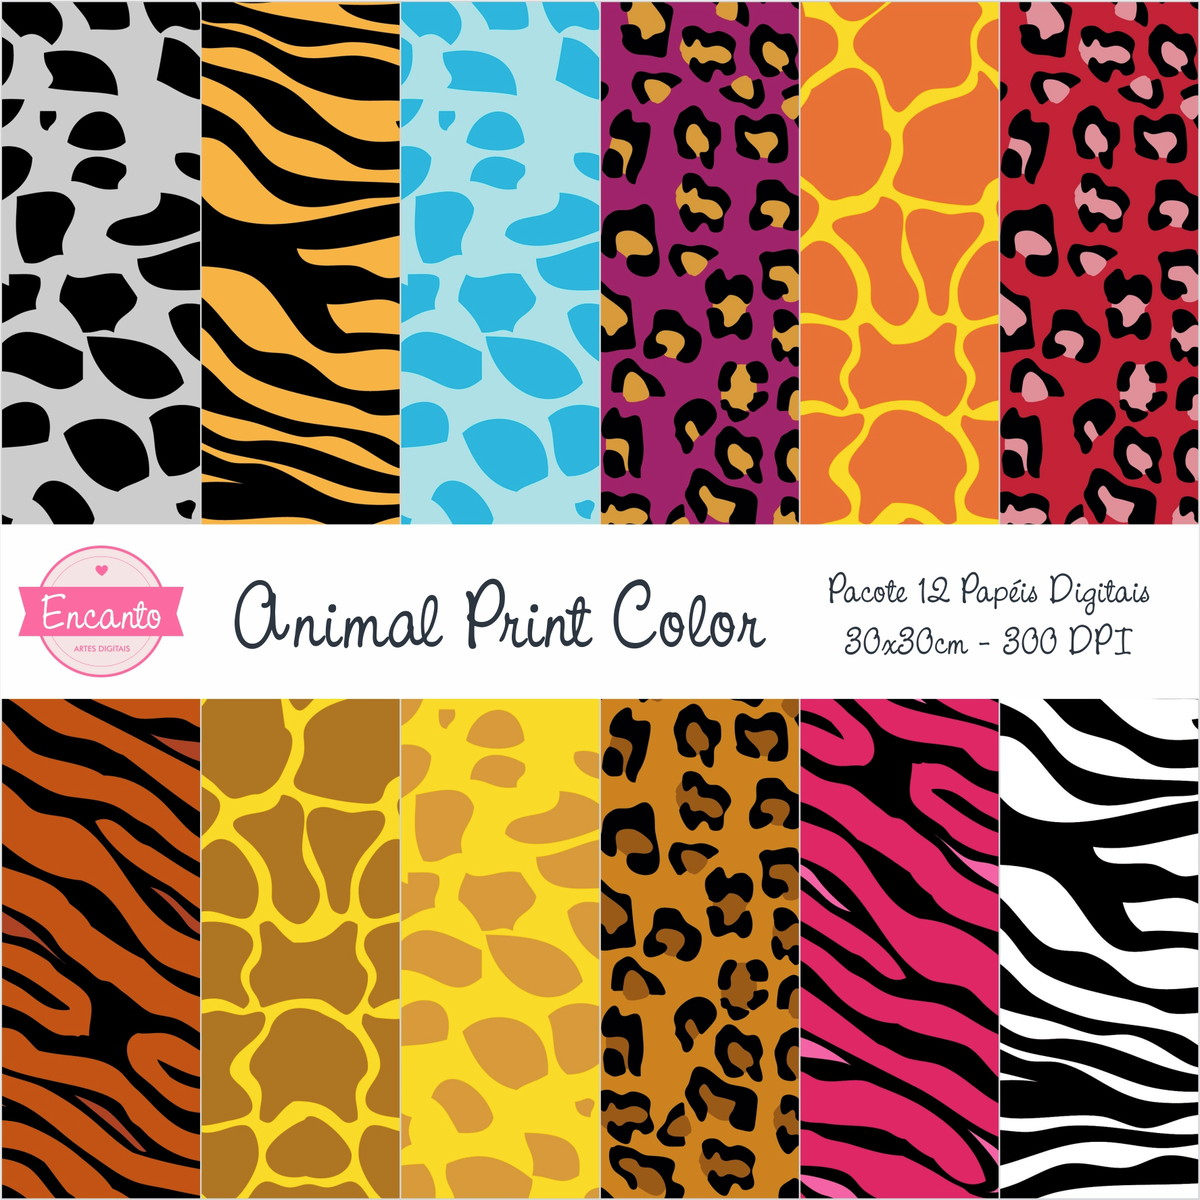 Kit Papel Digital - Animal Print Color no Elo7 | Encanto Artes ...